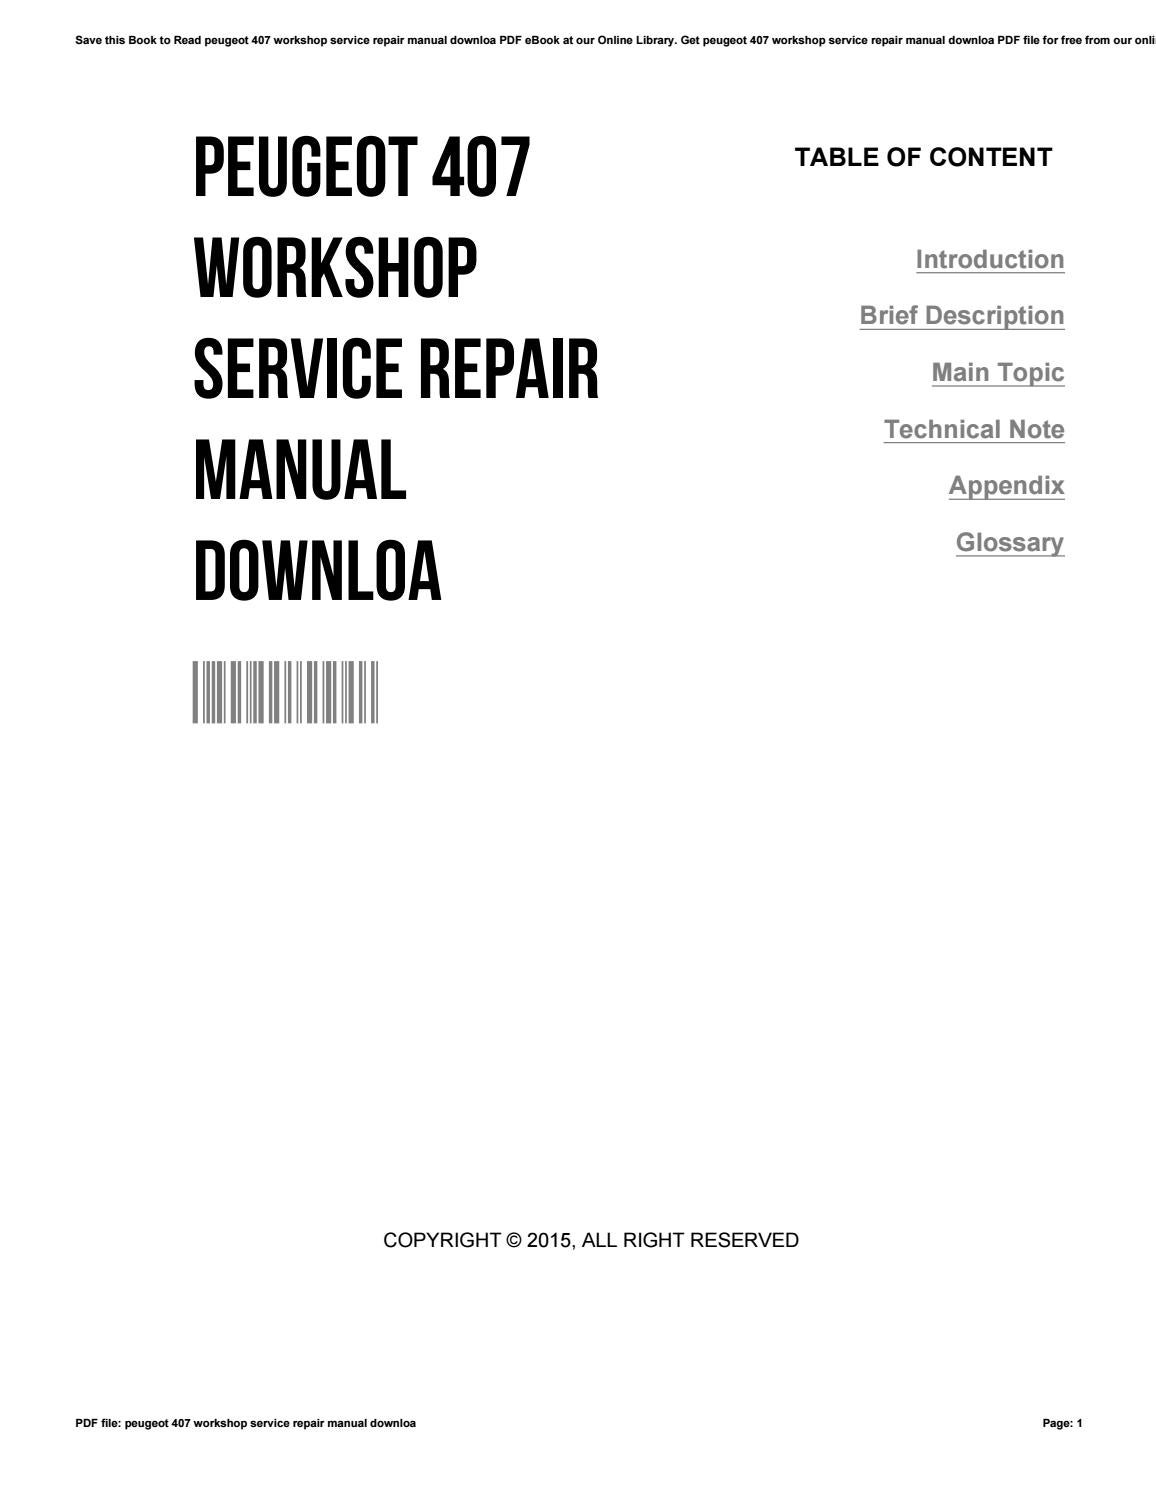 Peugeot 407 workshop service repair manual downloa by